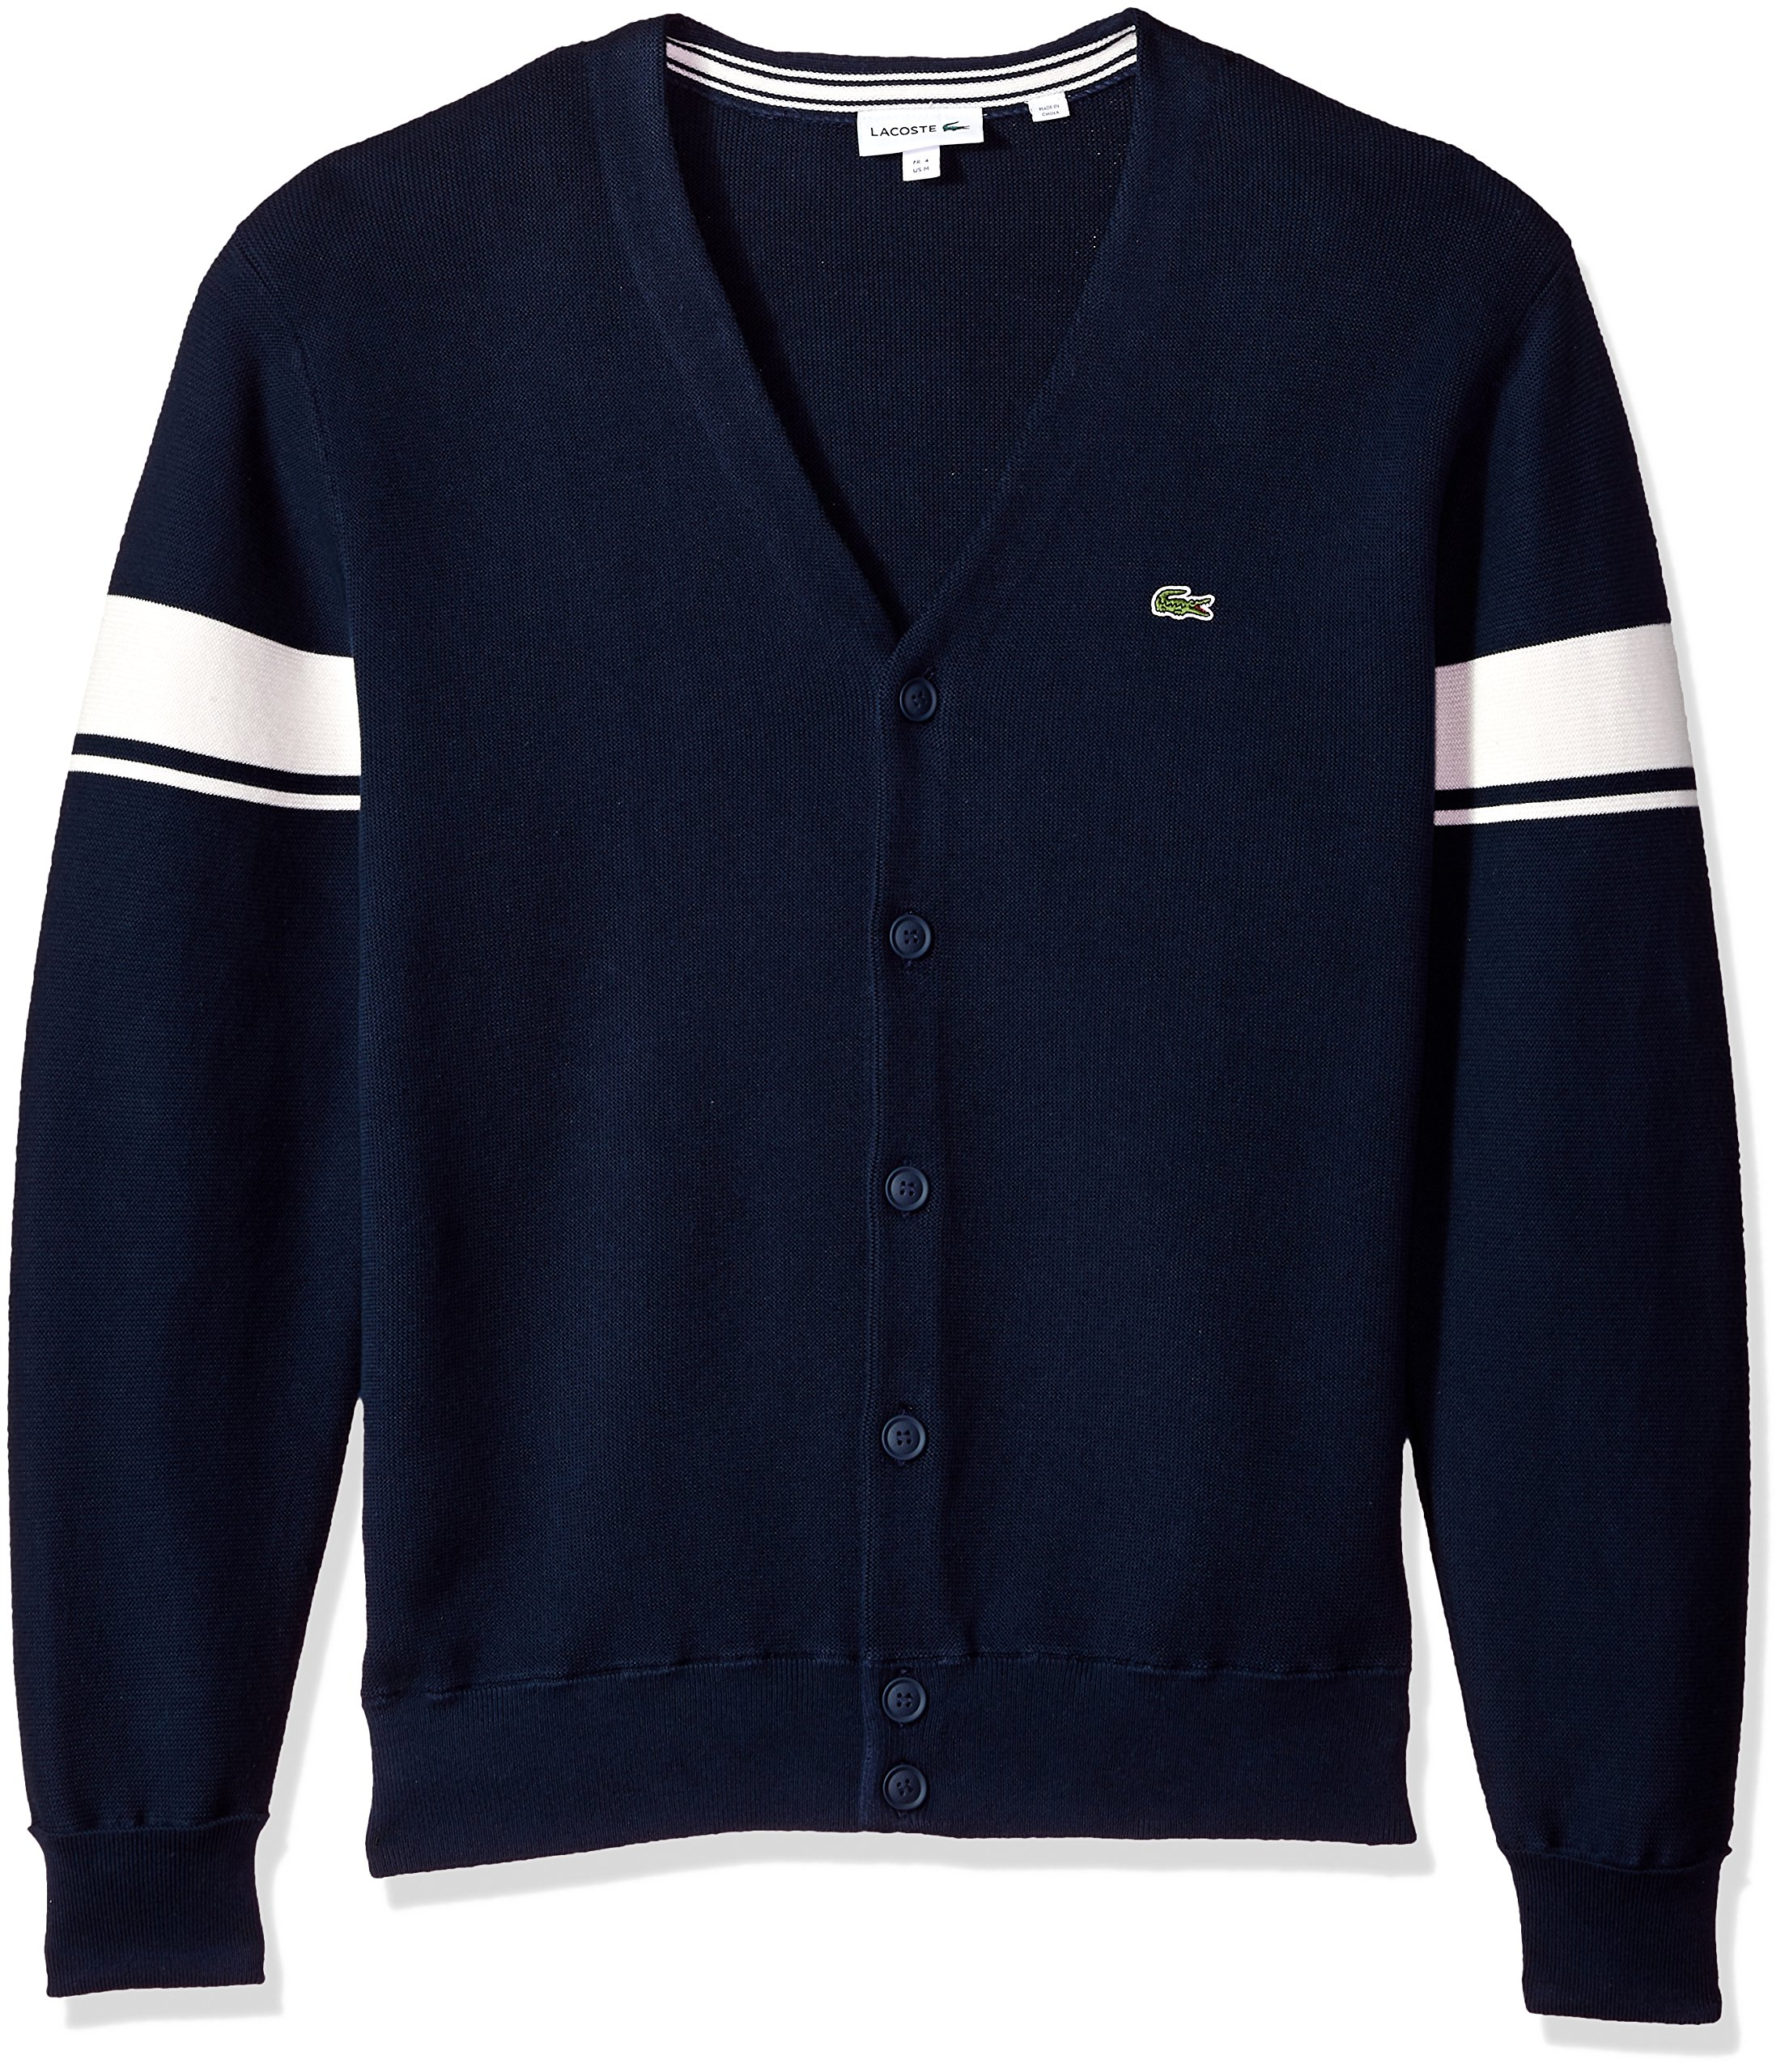 Lacoste Men's Long Sleeve Heritage France Milano Crew Neck Sweater, AH4562, Navy Blue/Cake/Flour White, XL